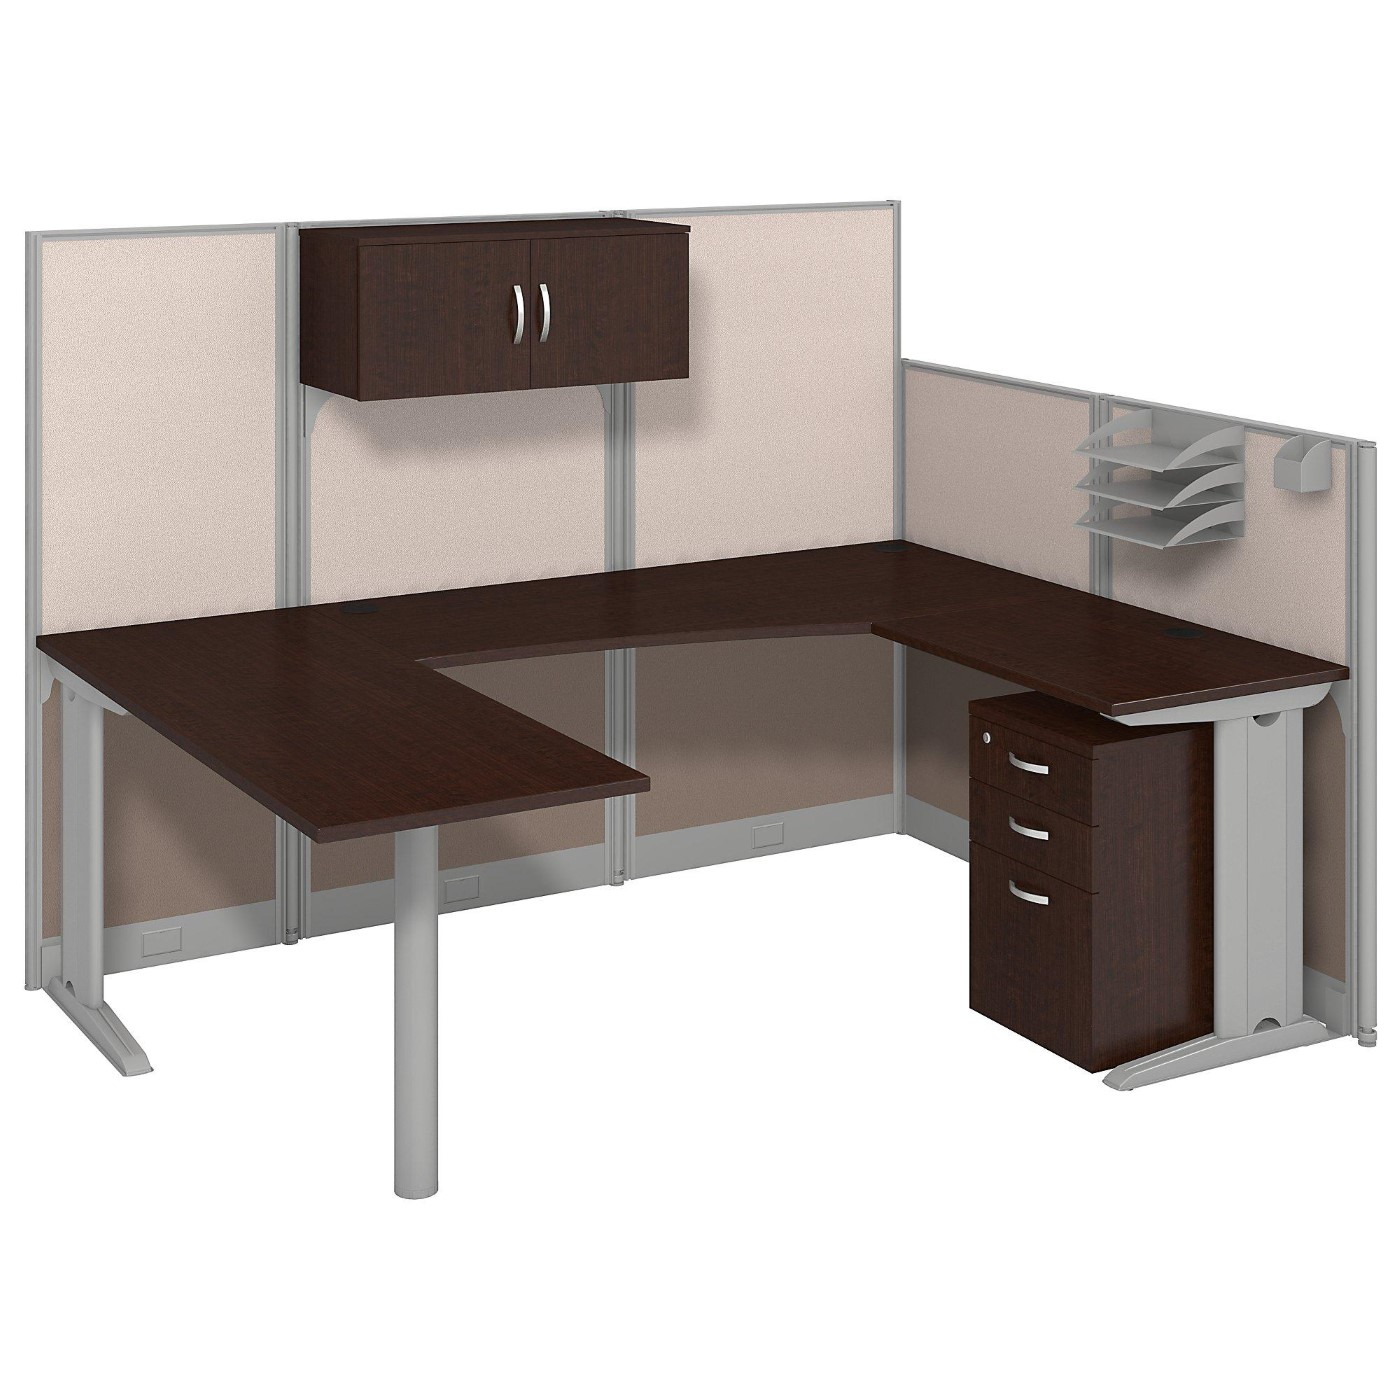 BUSH BUSINESS FURNITURE OFFICE IN AN HOUR 89W X 65D U SHAPED CUBICLE WORKSTATION WITH STORAGE. FREE SHIPPING.